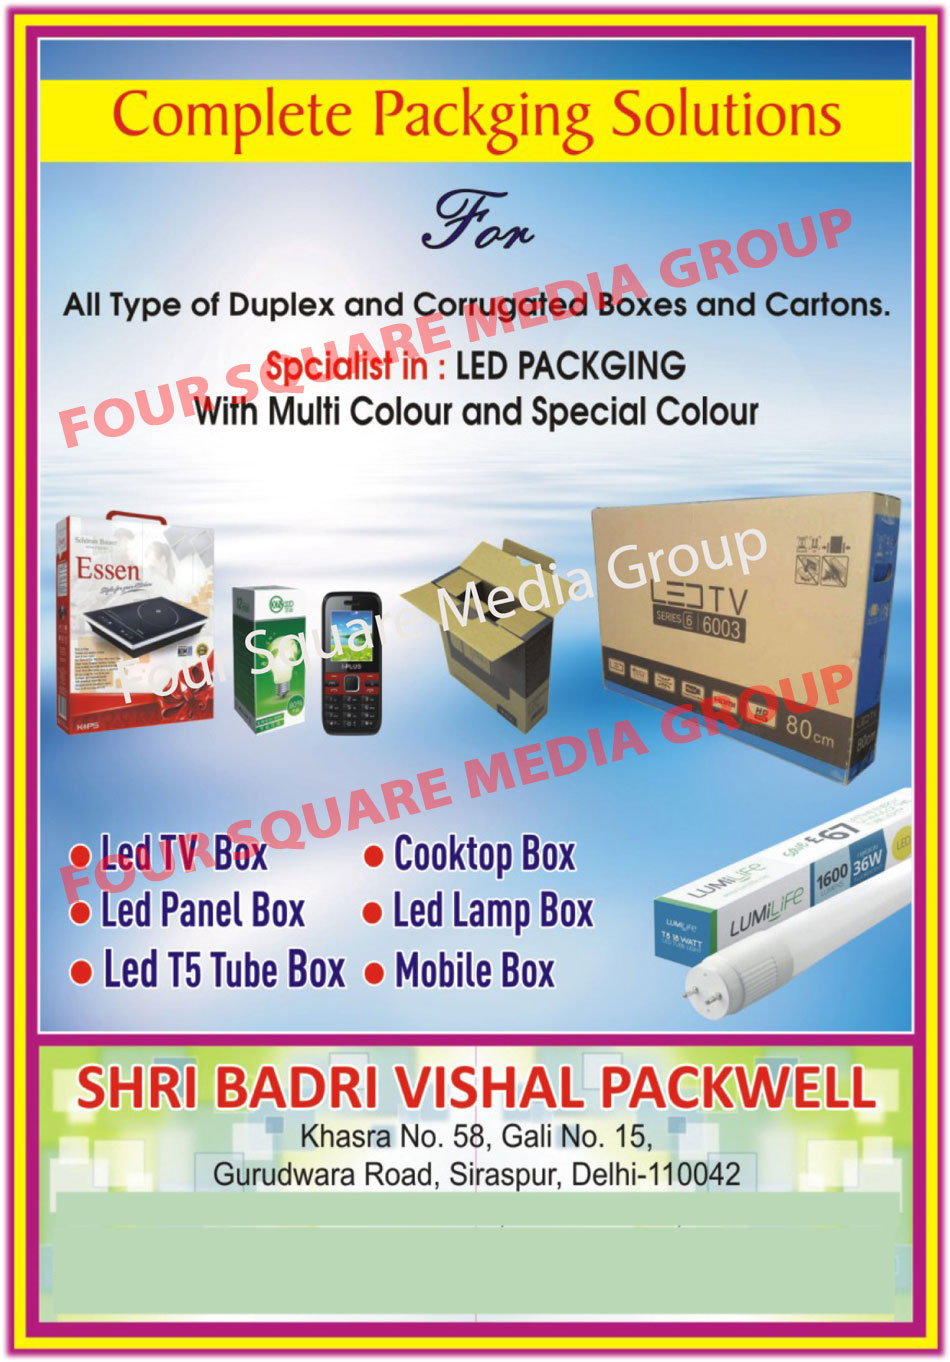 Packaging Solution, Duplex Box, Corrugated Box, Cartons, Led Packaging with Multi Colour and Special Colour, Led TV Box, Led Panel Box, Led T5 Tube Box, Cooktop Box, Led Lamp Box, Mobile Box